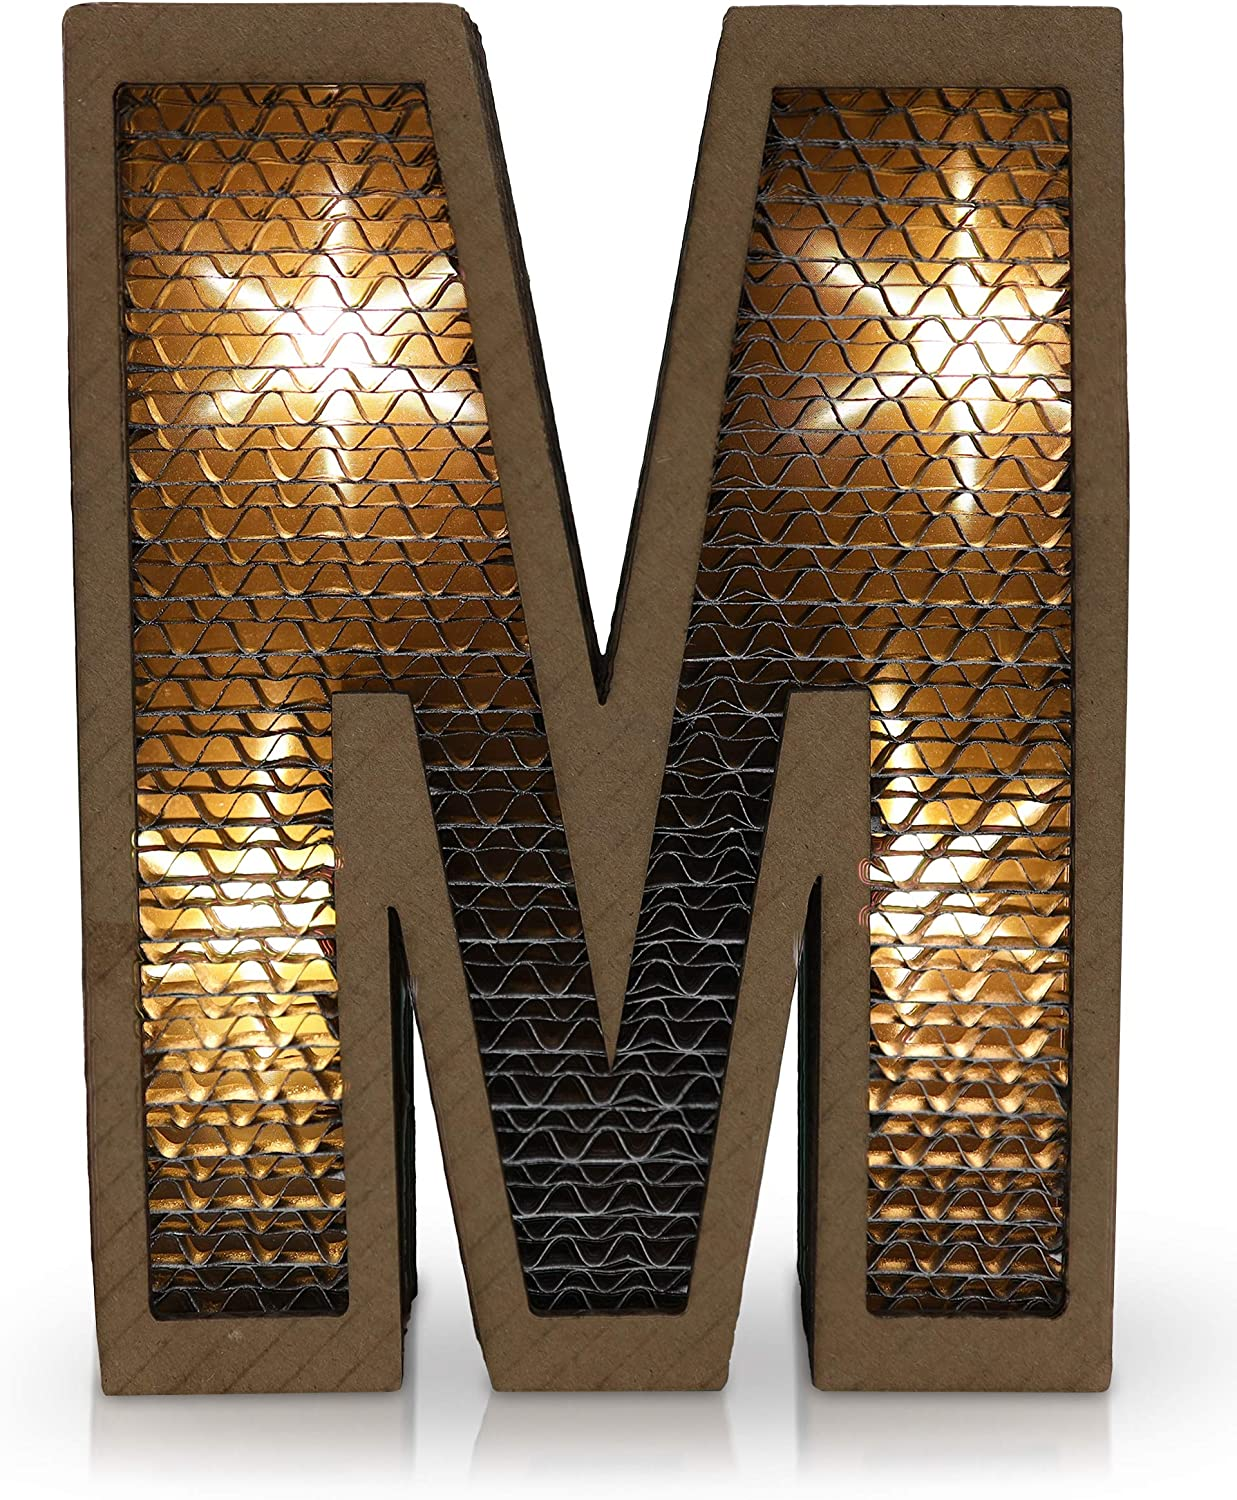 LED Light Paper Marquee Letter Decor - Letter M - Letter Wall Design with Battery Operated Lights - Large Decorative Letters for Bedroom, Kids Room, Living Room - Birthday Party Decoration